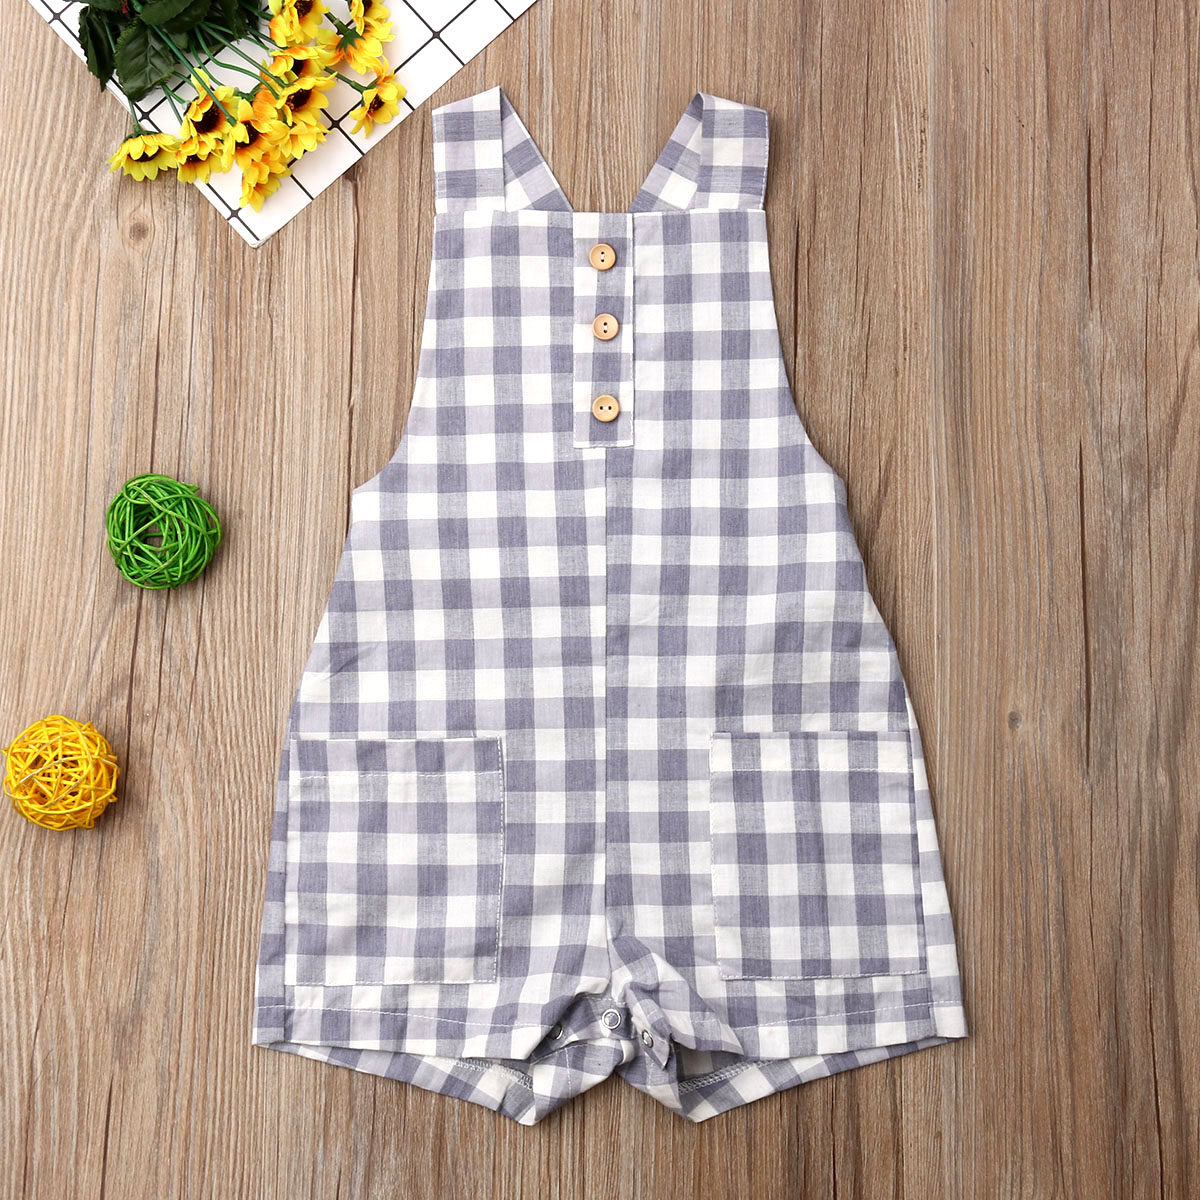 Pudcoco Newborn Baby Boy Girl   Romper   Sleeveless Plaids Strap   Romper   Jumpsuit Outfits Sunsuit Clothes